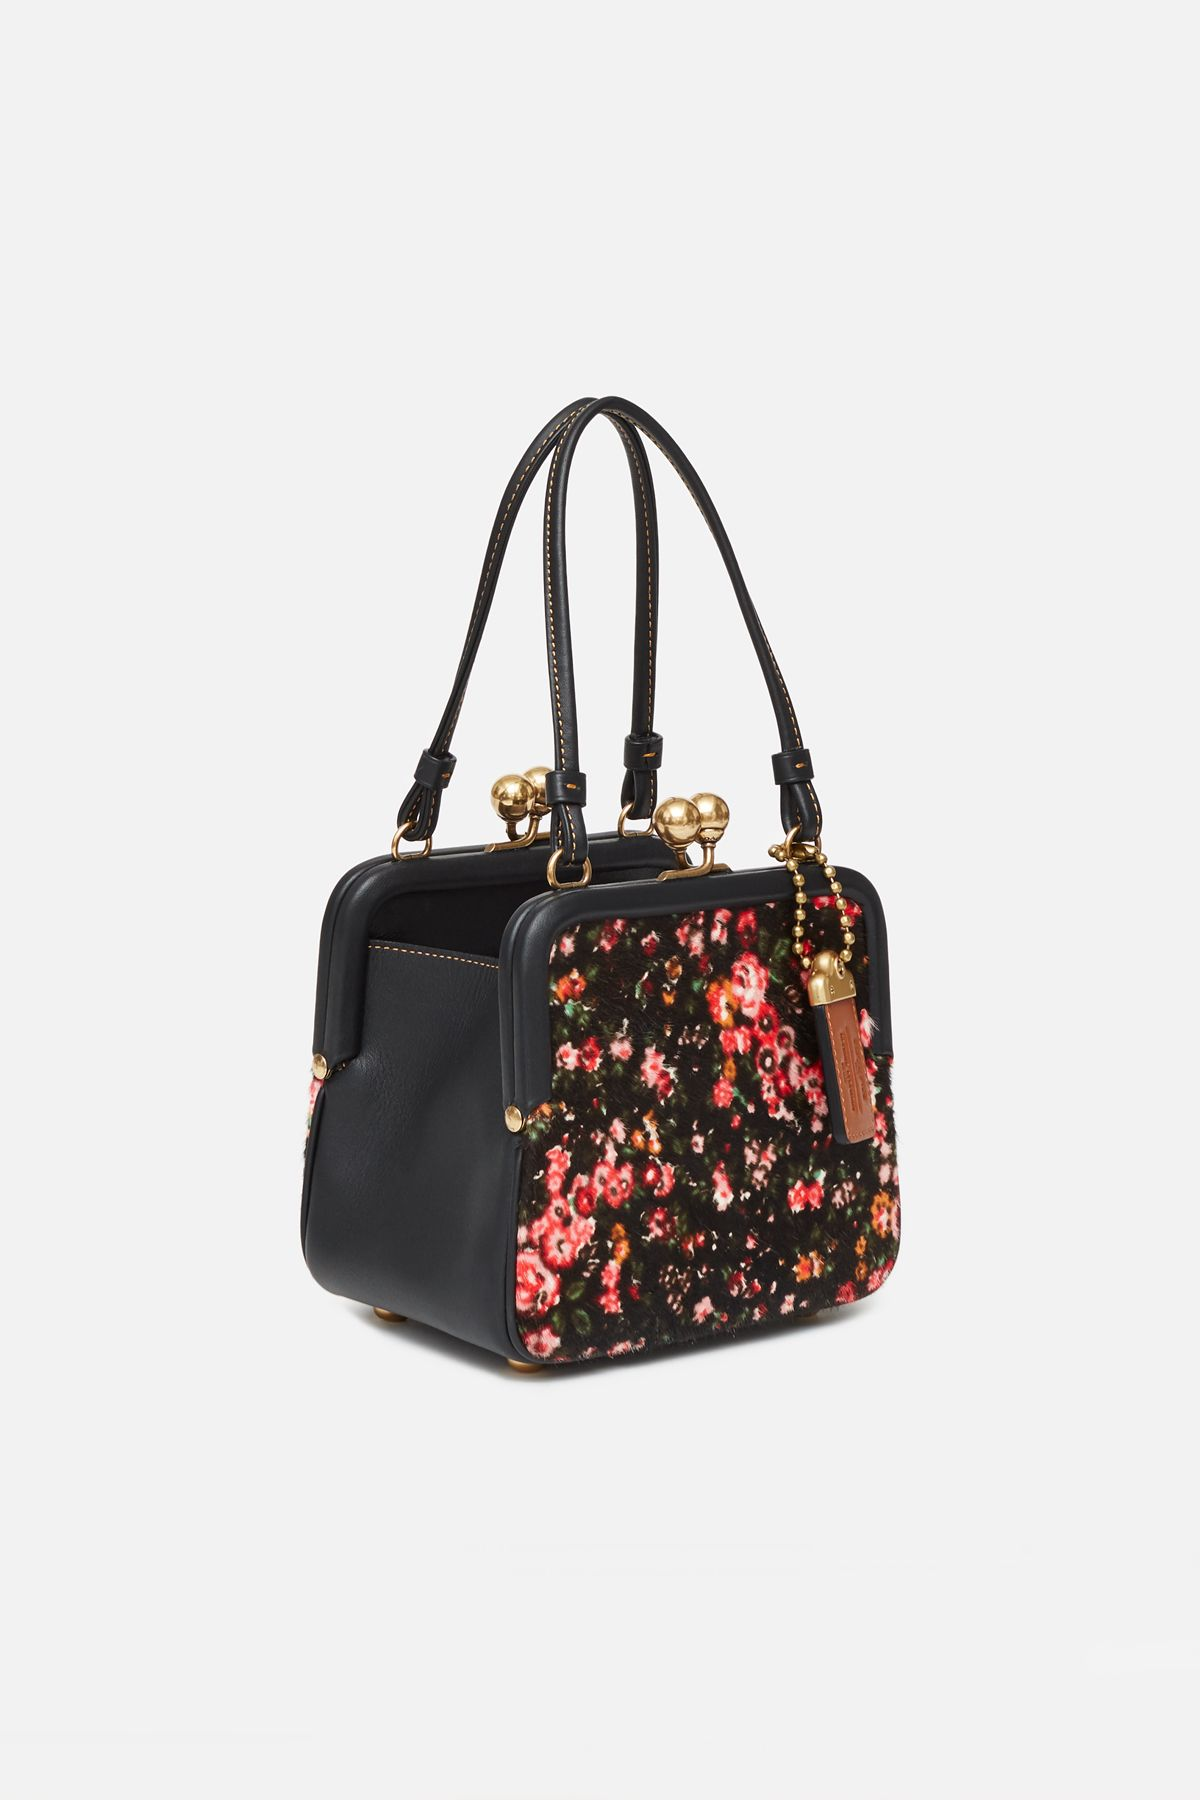 5656638258ab COACH 1941 X OPENING CEREMONY SQUARE HAIRCALF TALL FRAME BAG $595 ...